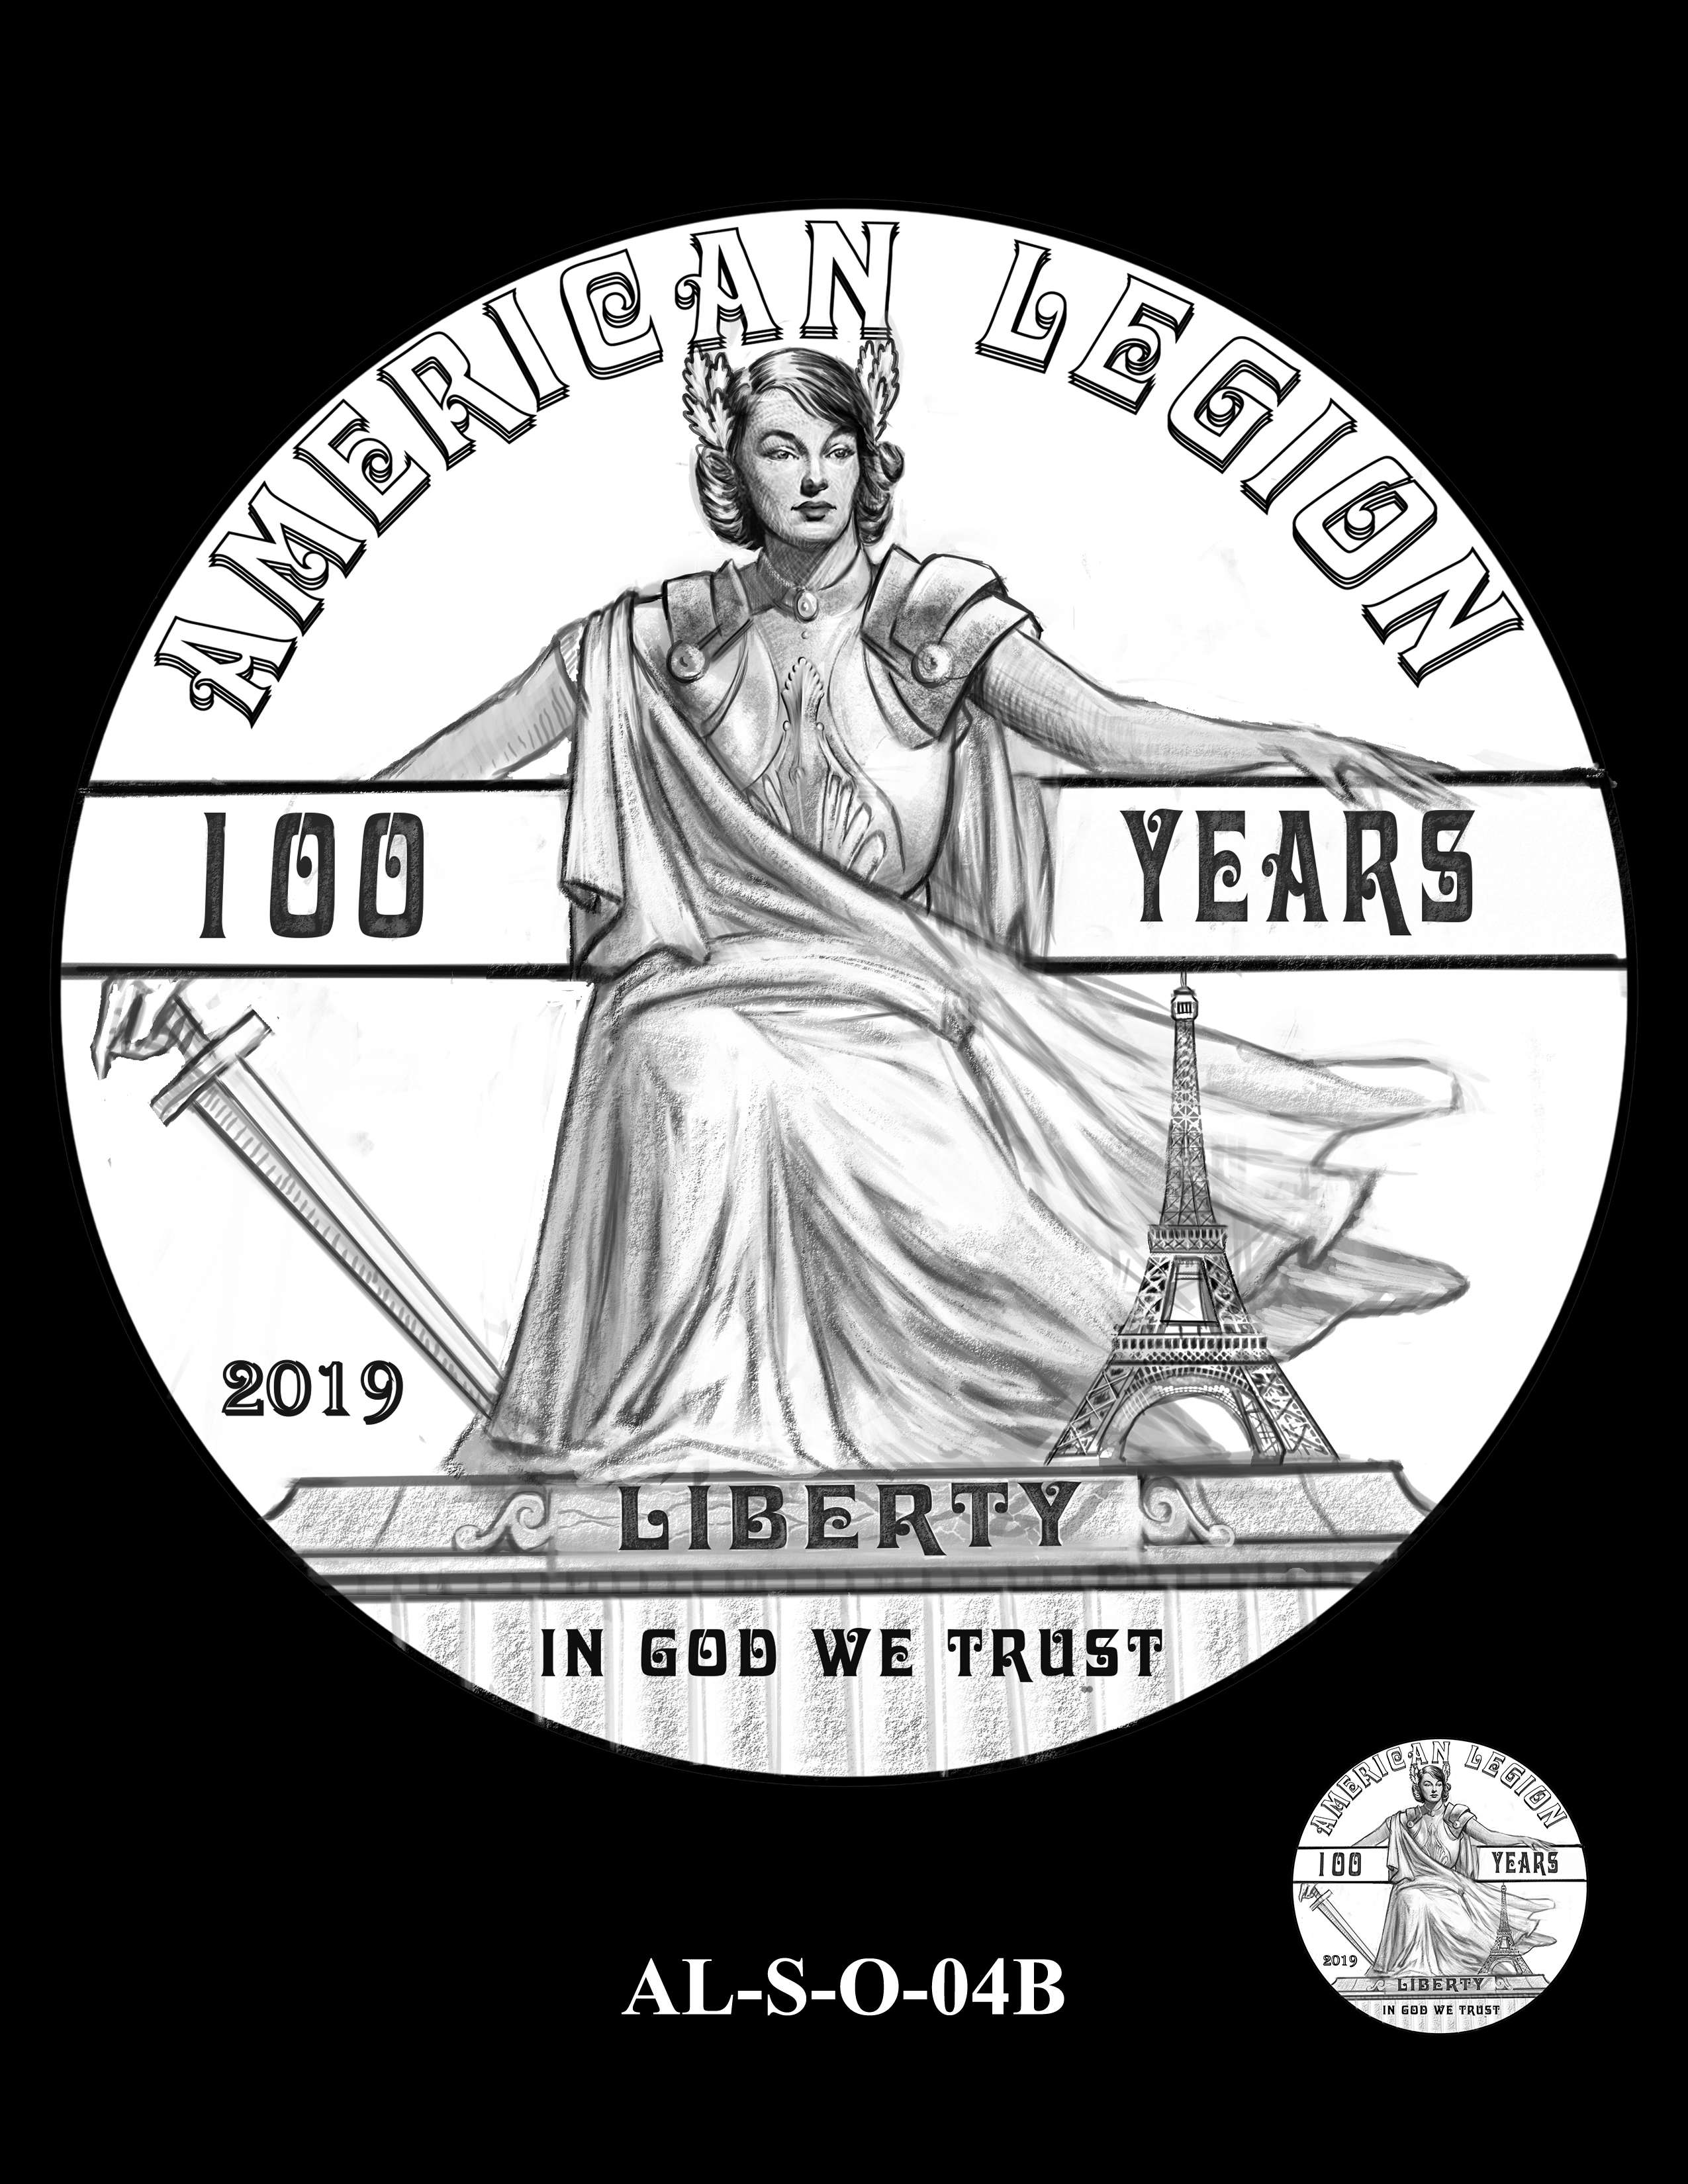 AL-S-O-04B -- 2019 American Legion 100th Anniversary Commemorative Coin Program - Silver Obverse